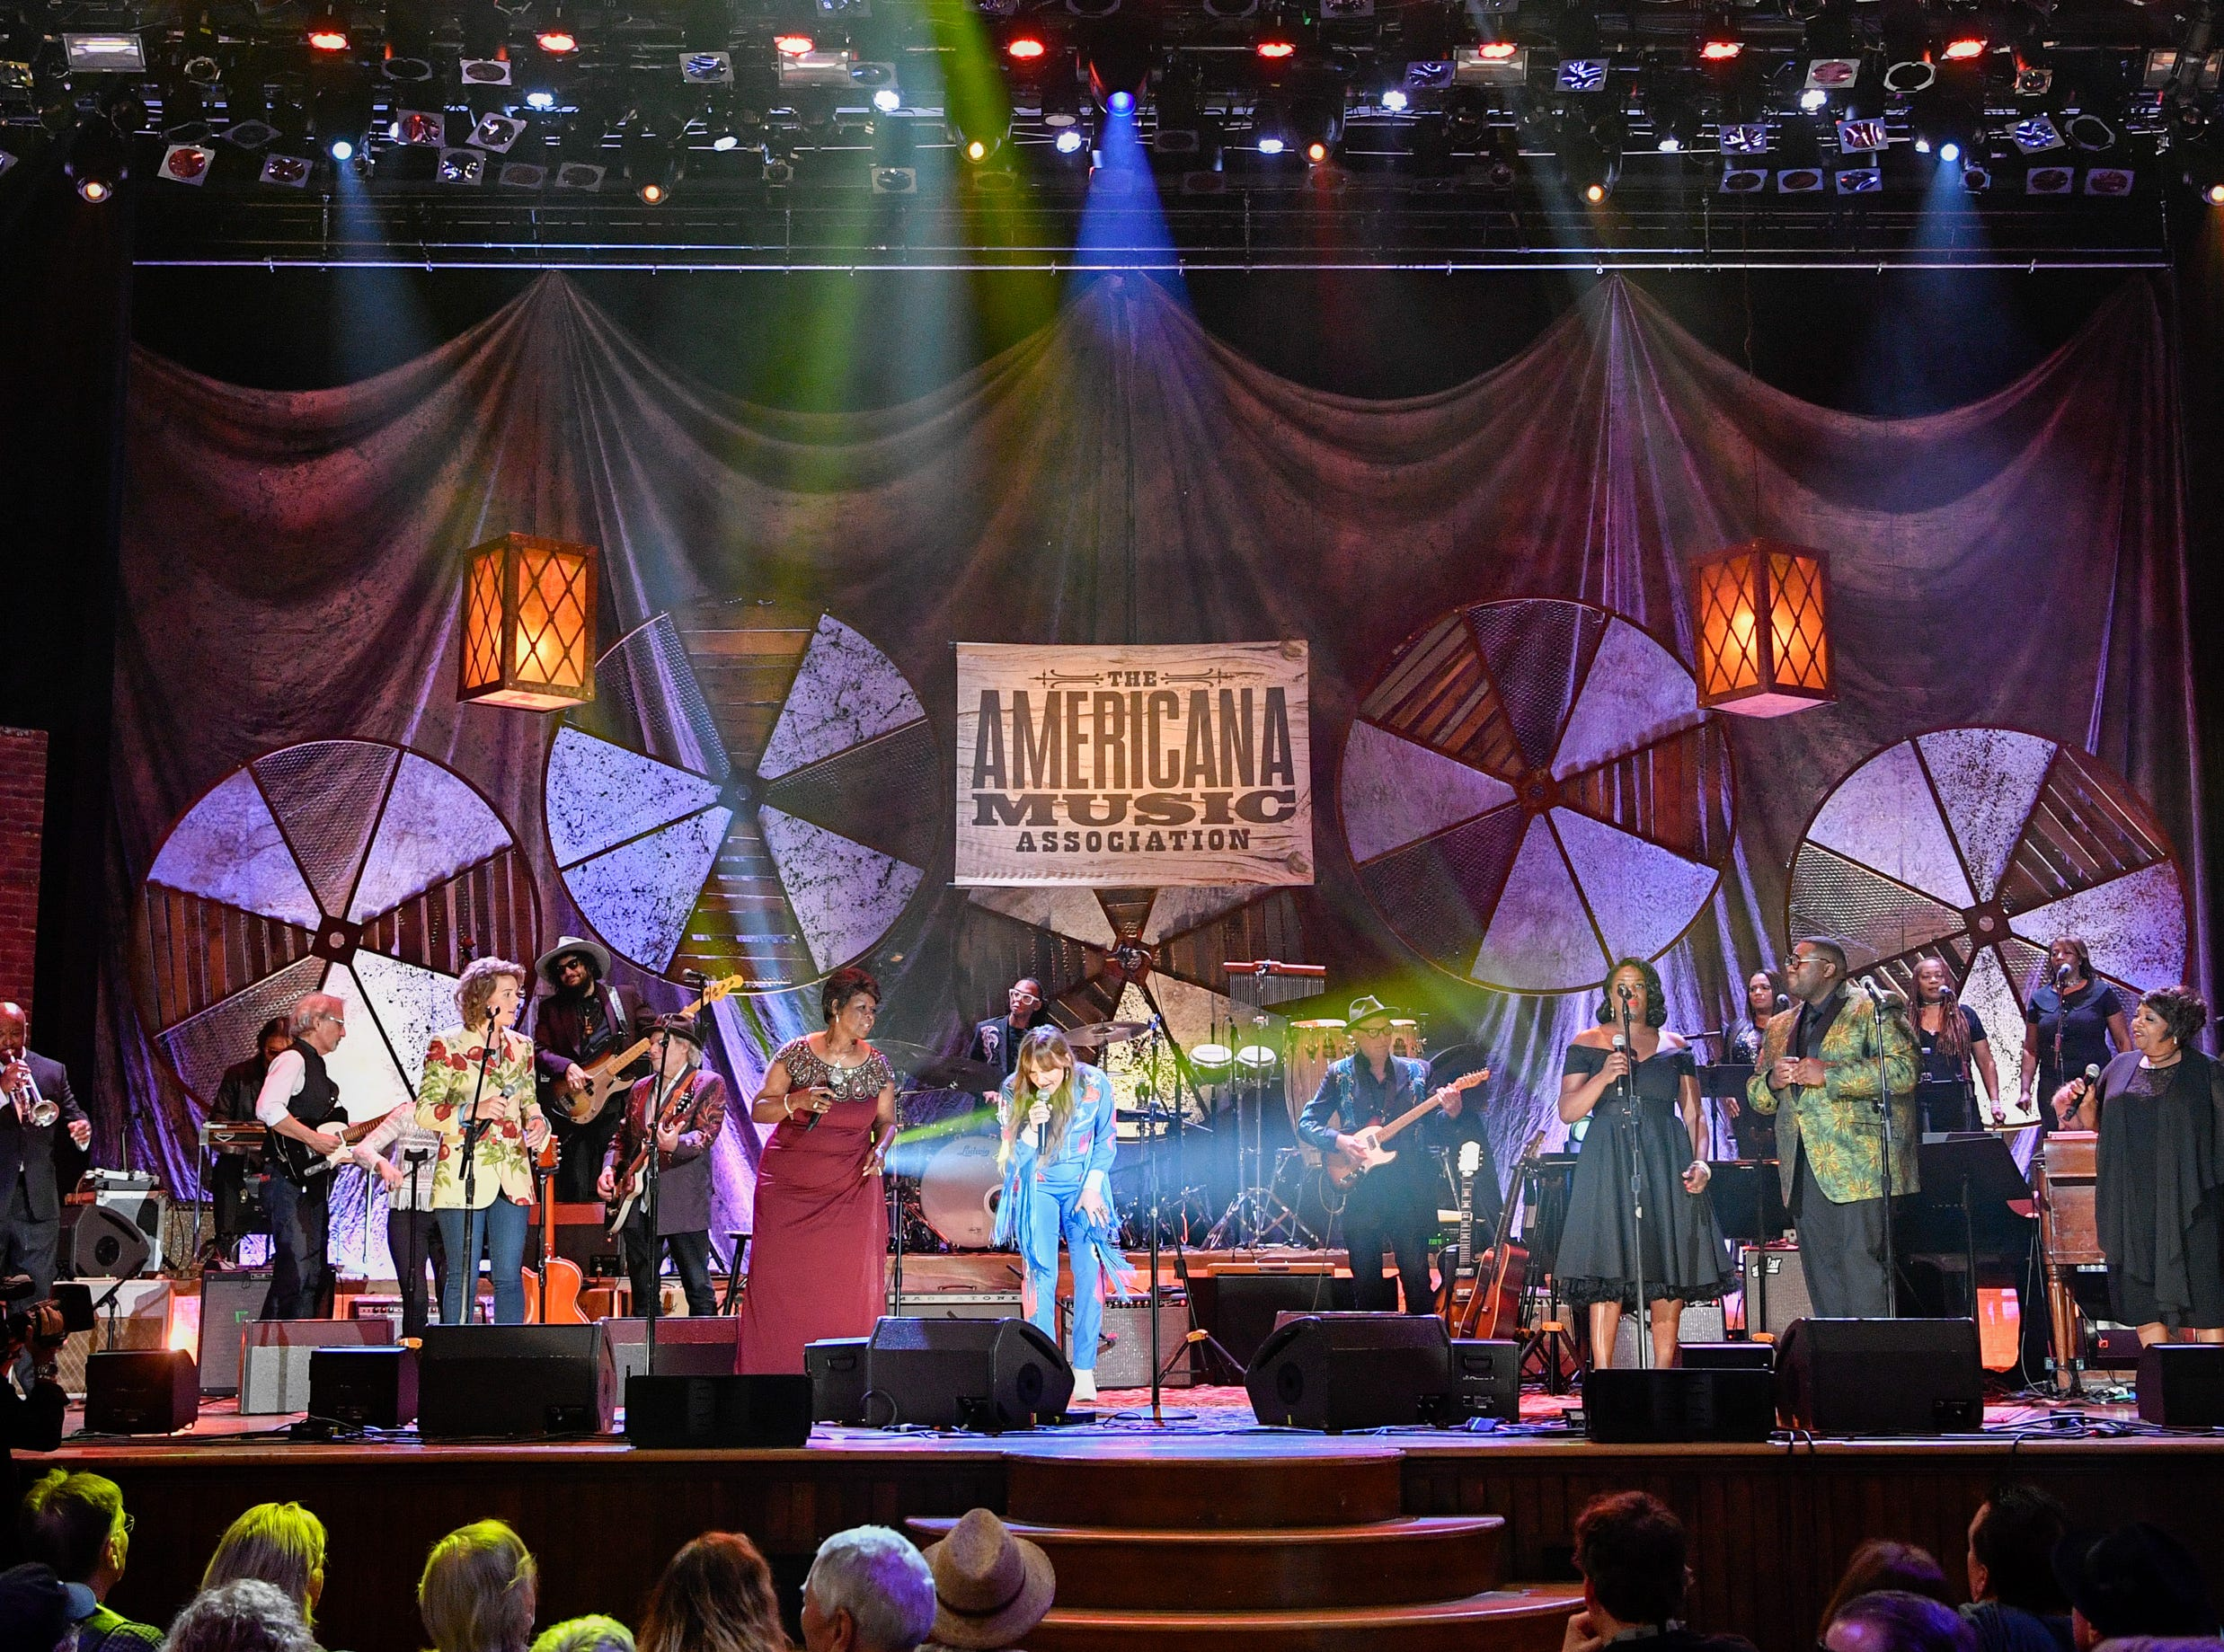 Performers play Chain of Fools for the finale during the 2018 Americana Honors and Awards show at the Ryman Auditorium in Nashville, Tenn., Wednesday, Sept. 12, 2018.